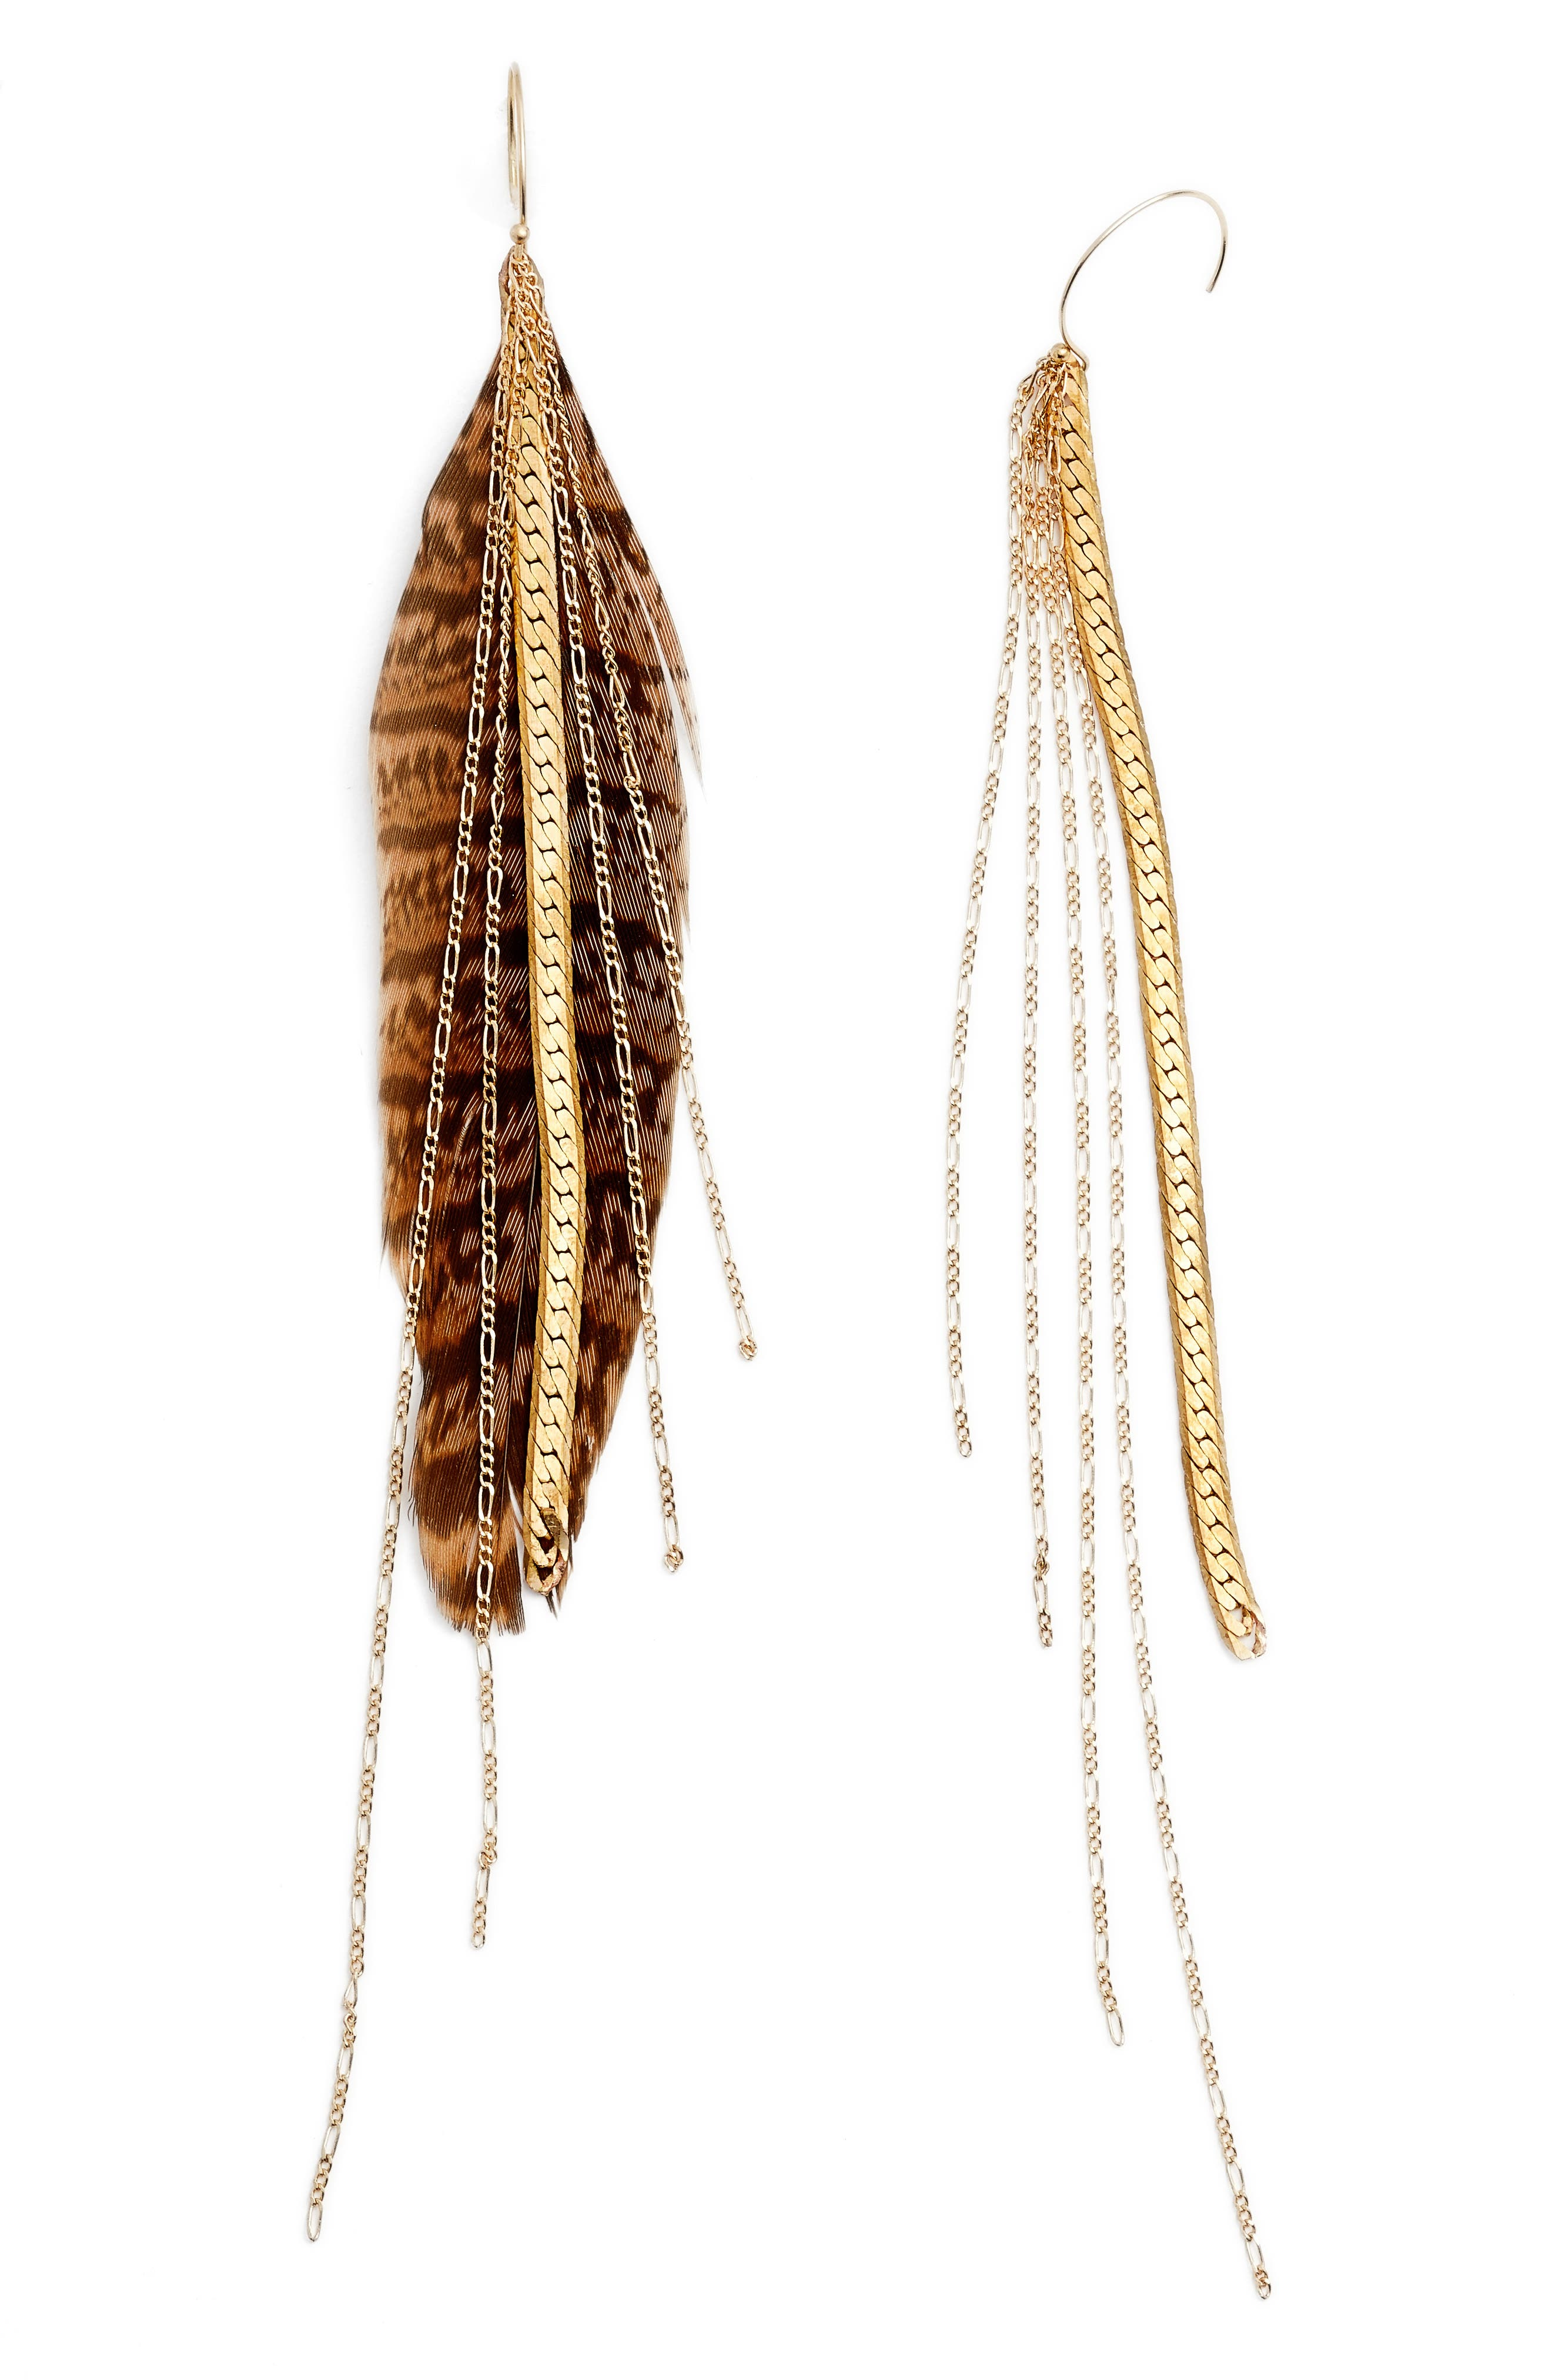 Chain & Feather Earrings,                         Main,                         color, Gold/ Tan